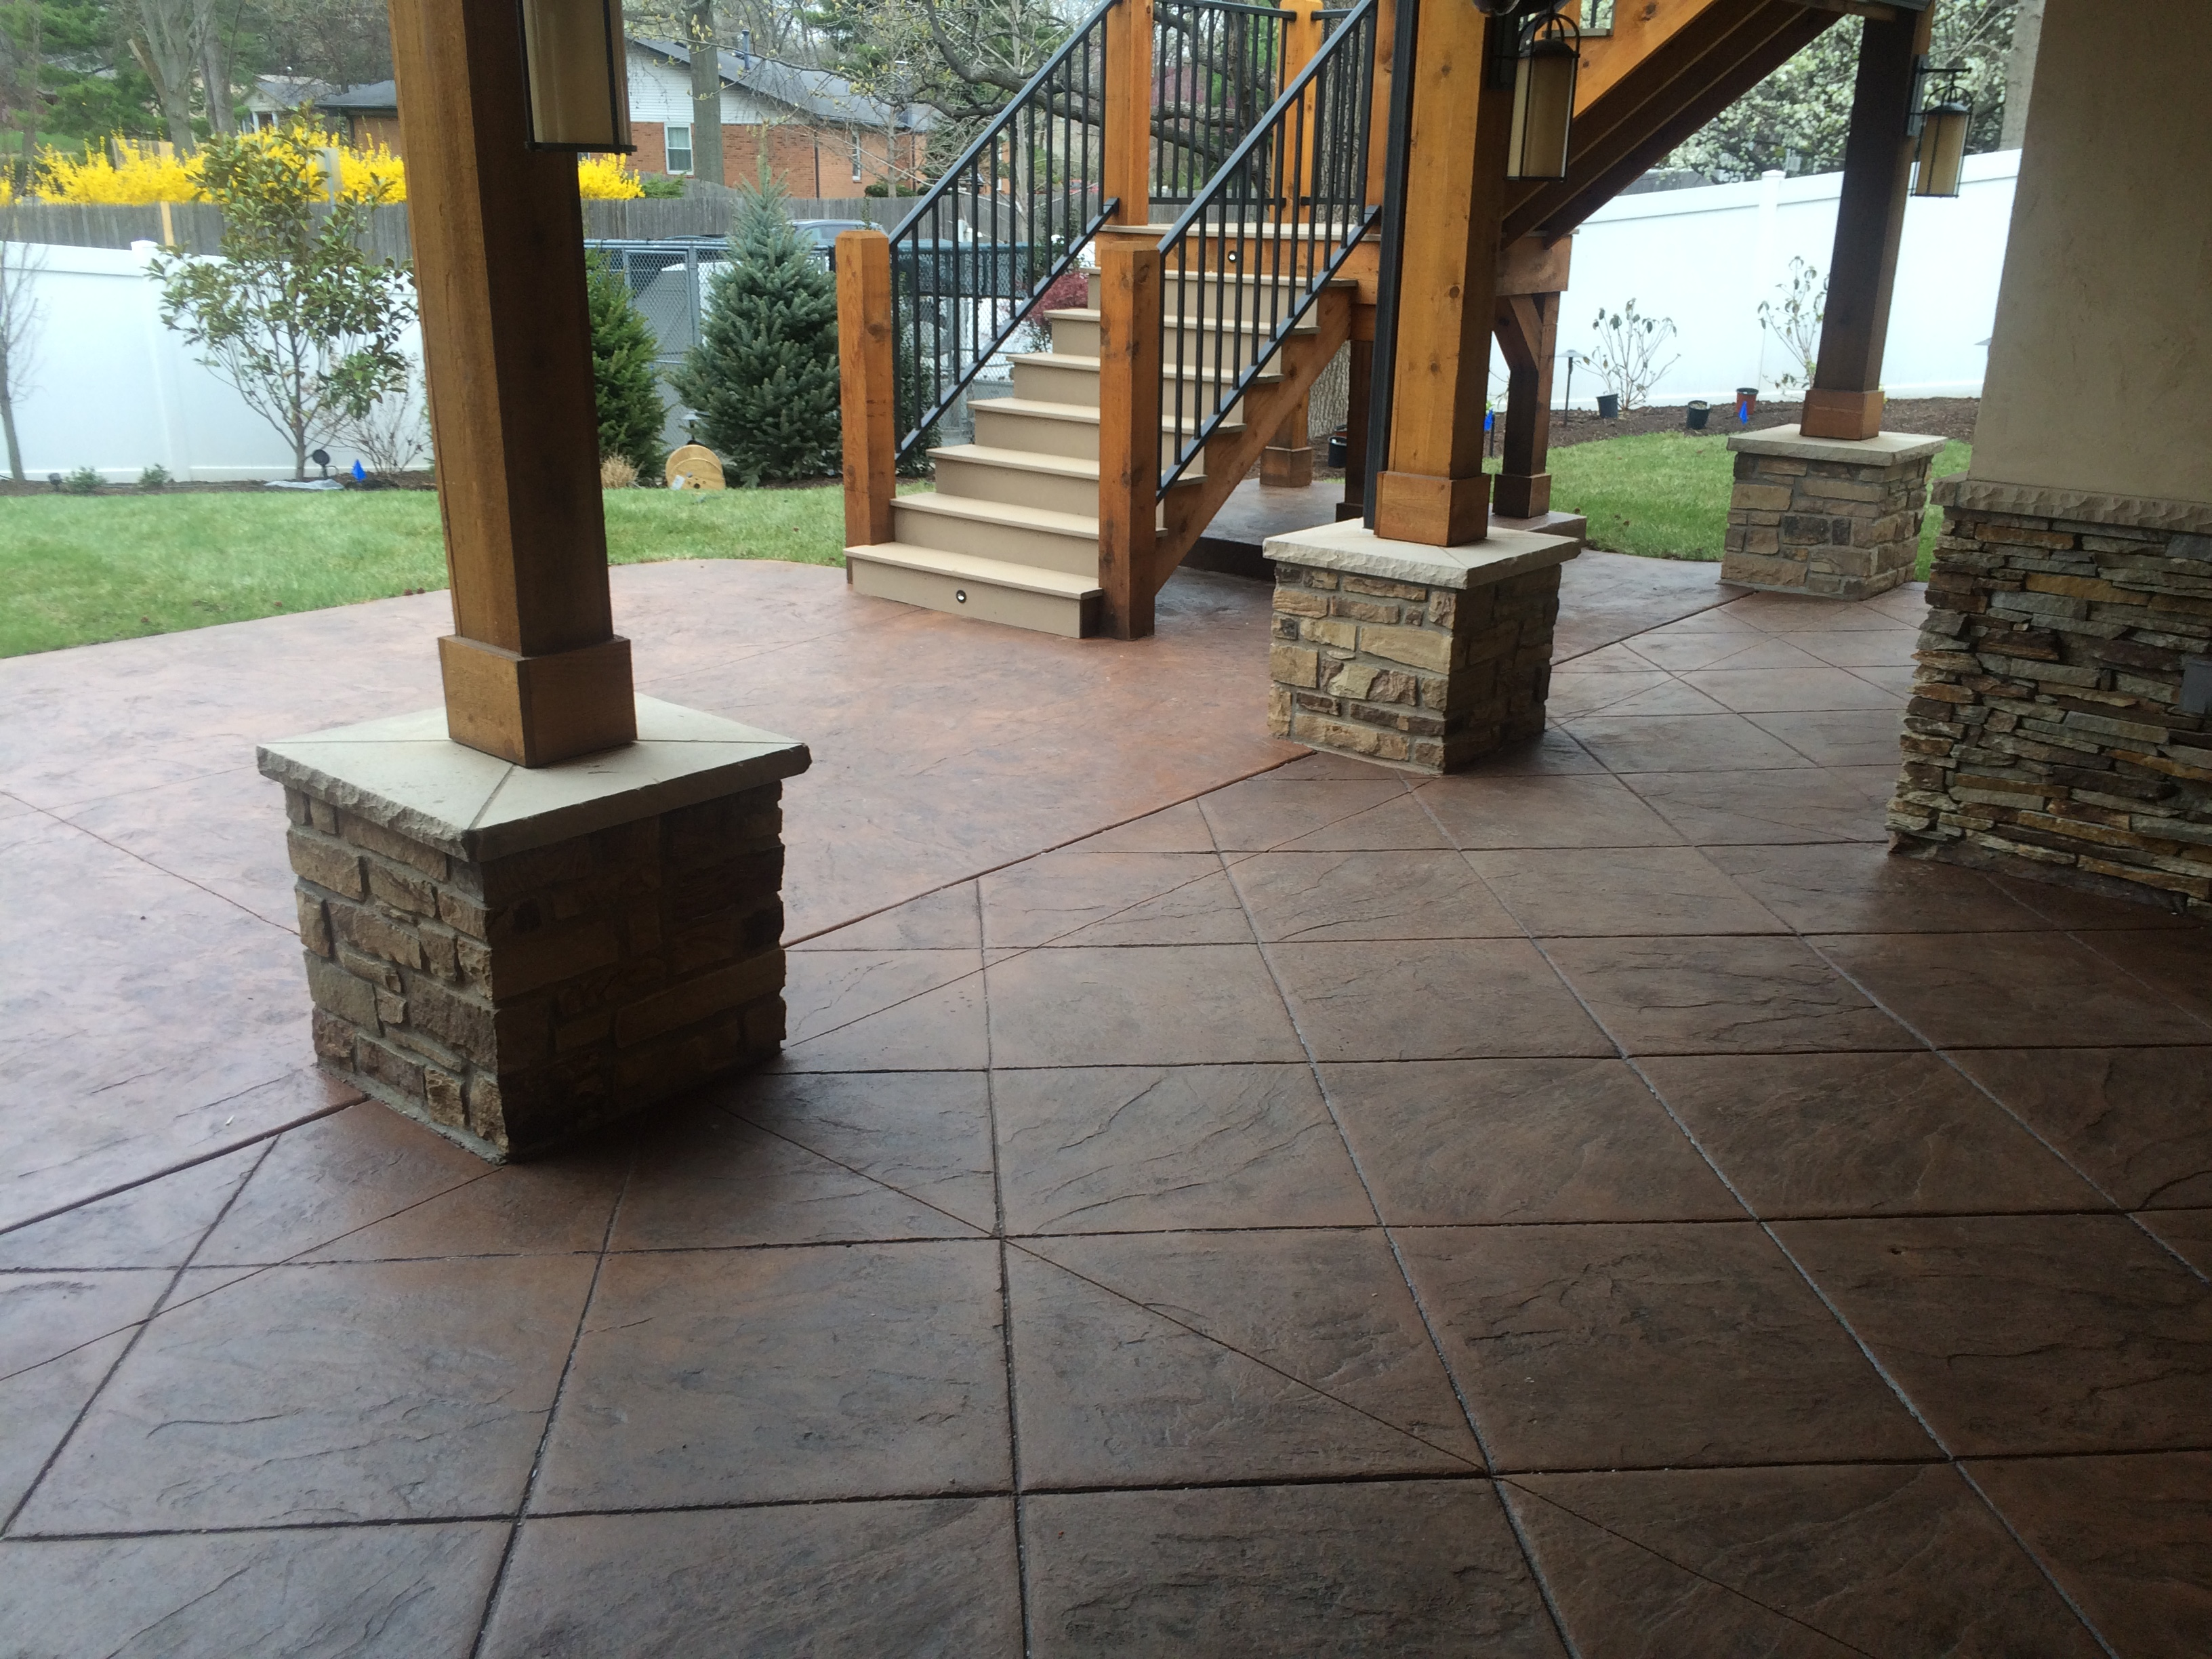 Brown Concrete Patio and Brick Pillars